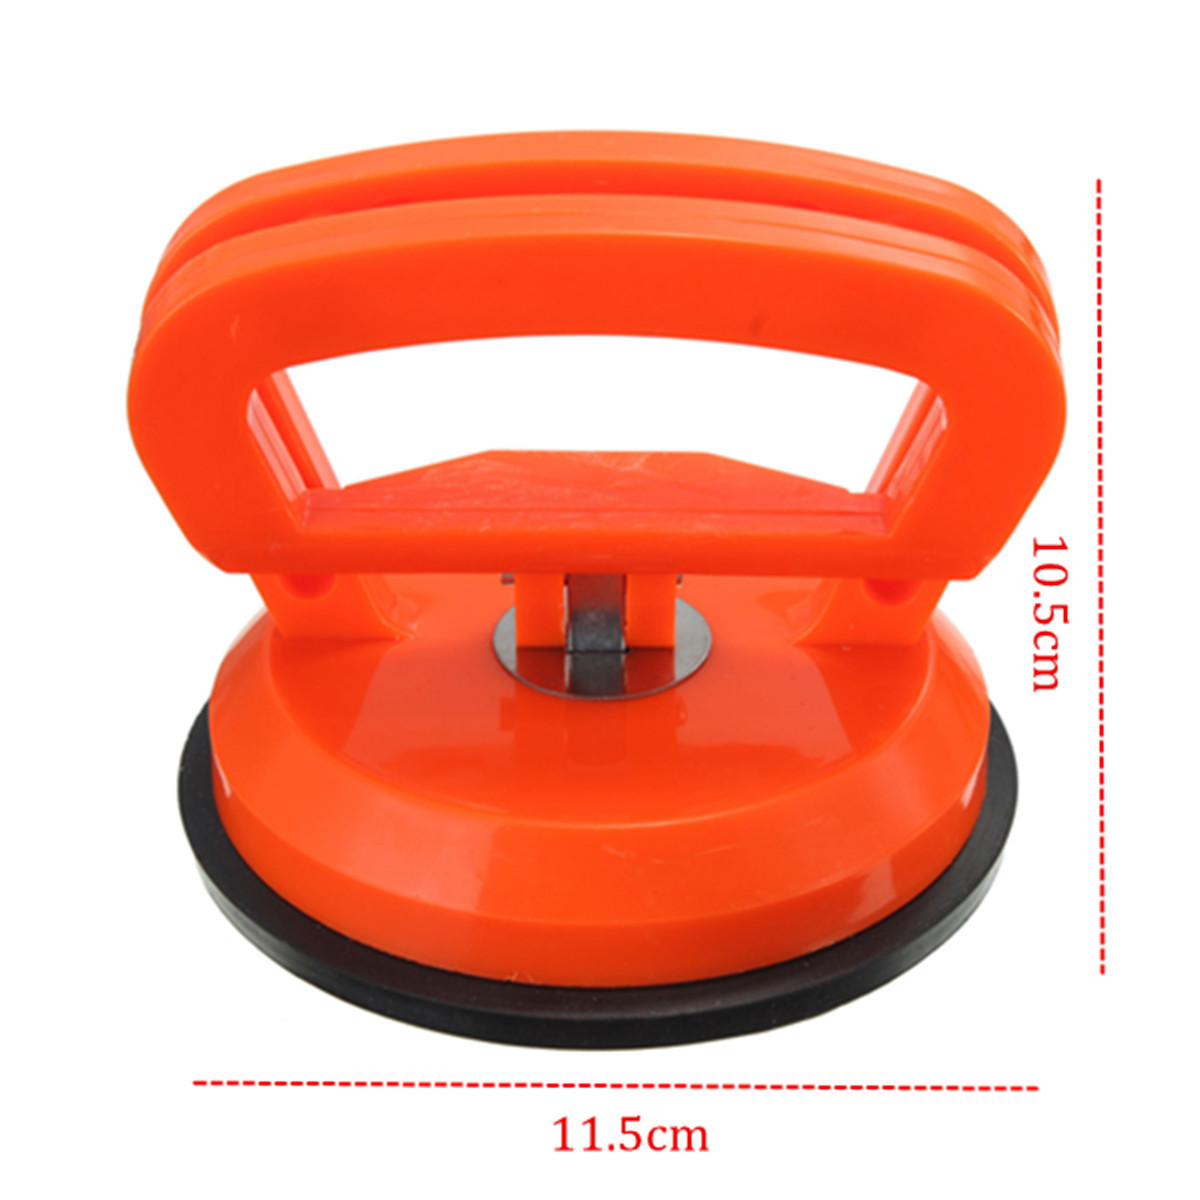 115mm Car Vacuum Suction Cup Dent Puller Bodywork Panel Remover Repair Tools